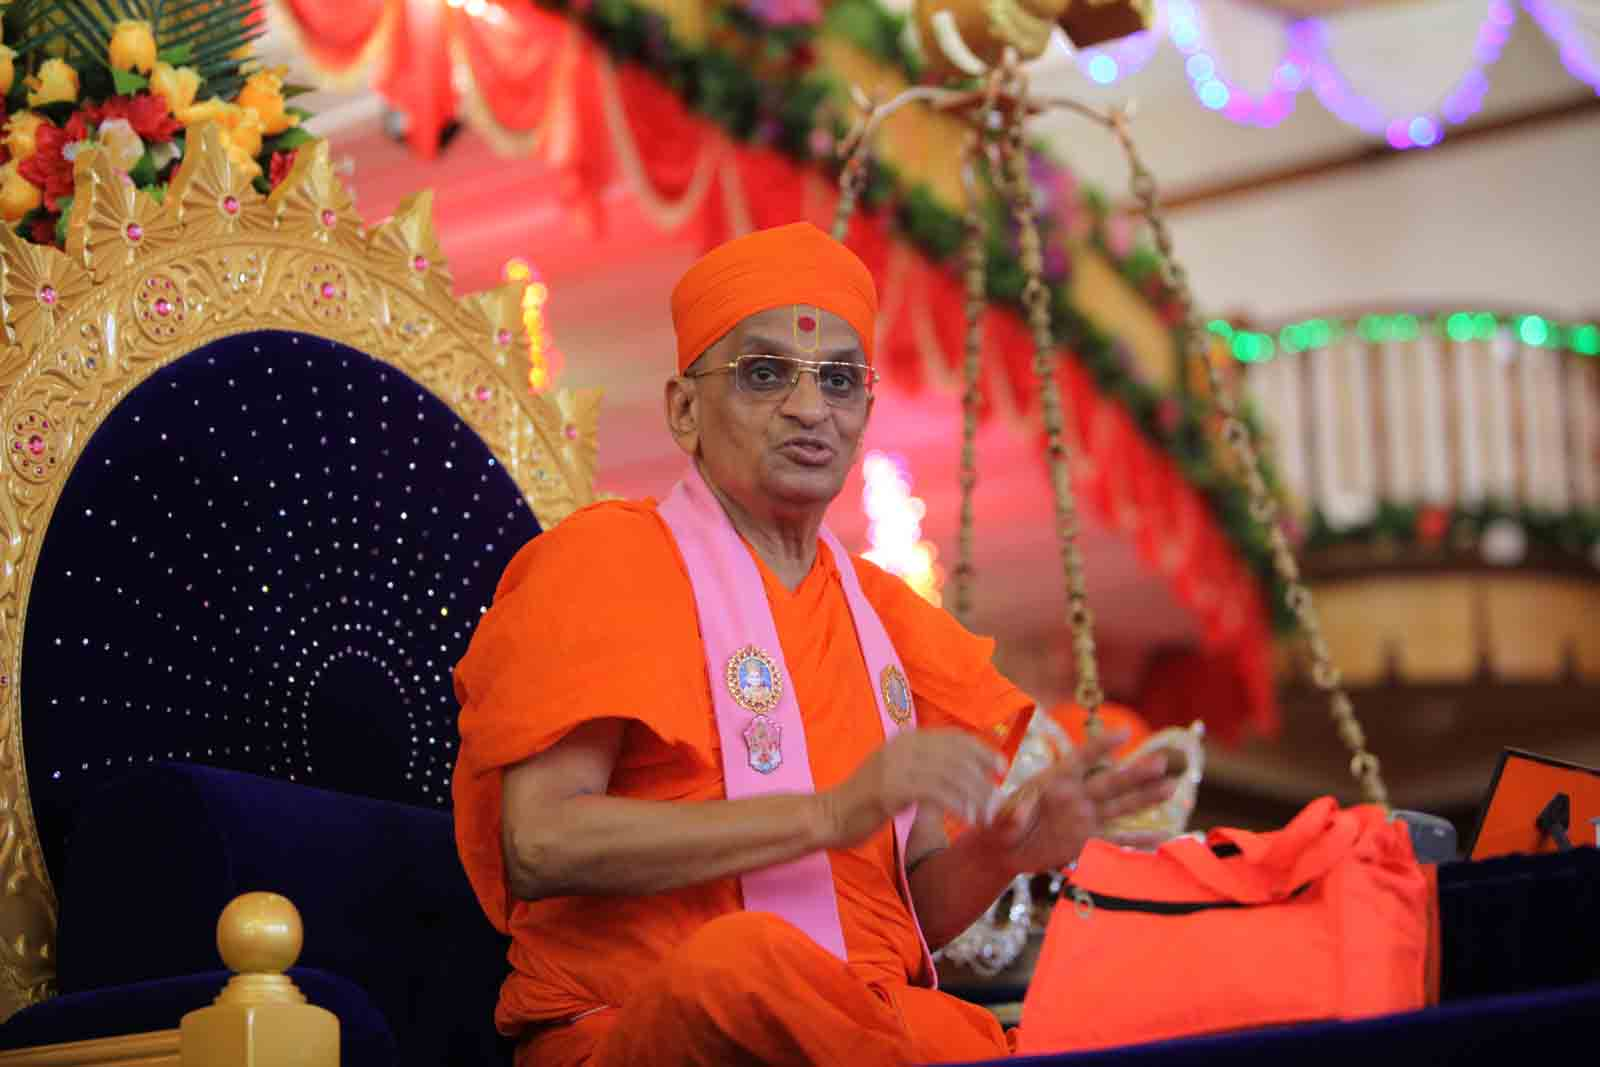 Divine darshan of Acharya Swamishree during his discourses